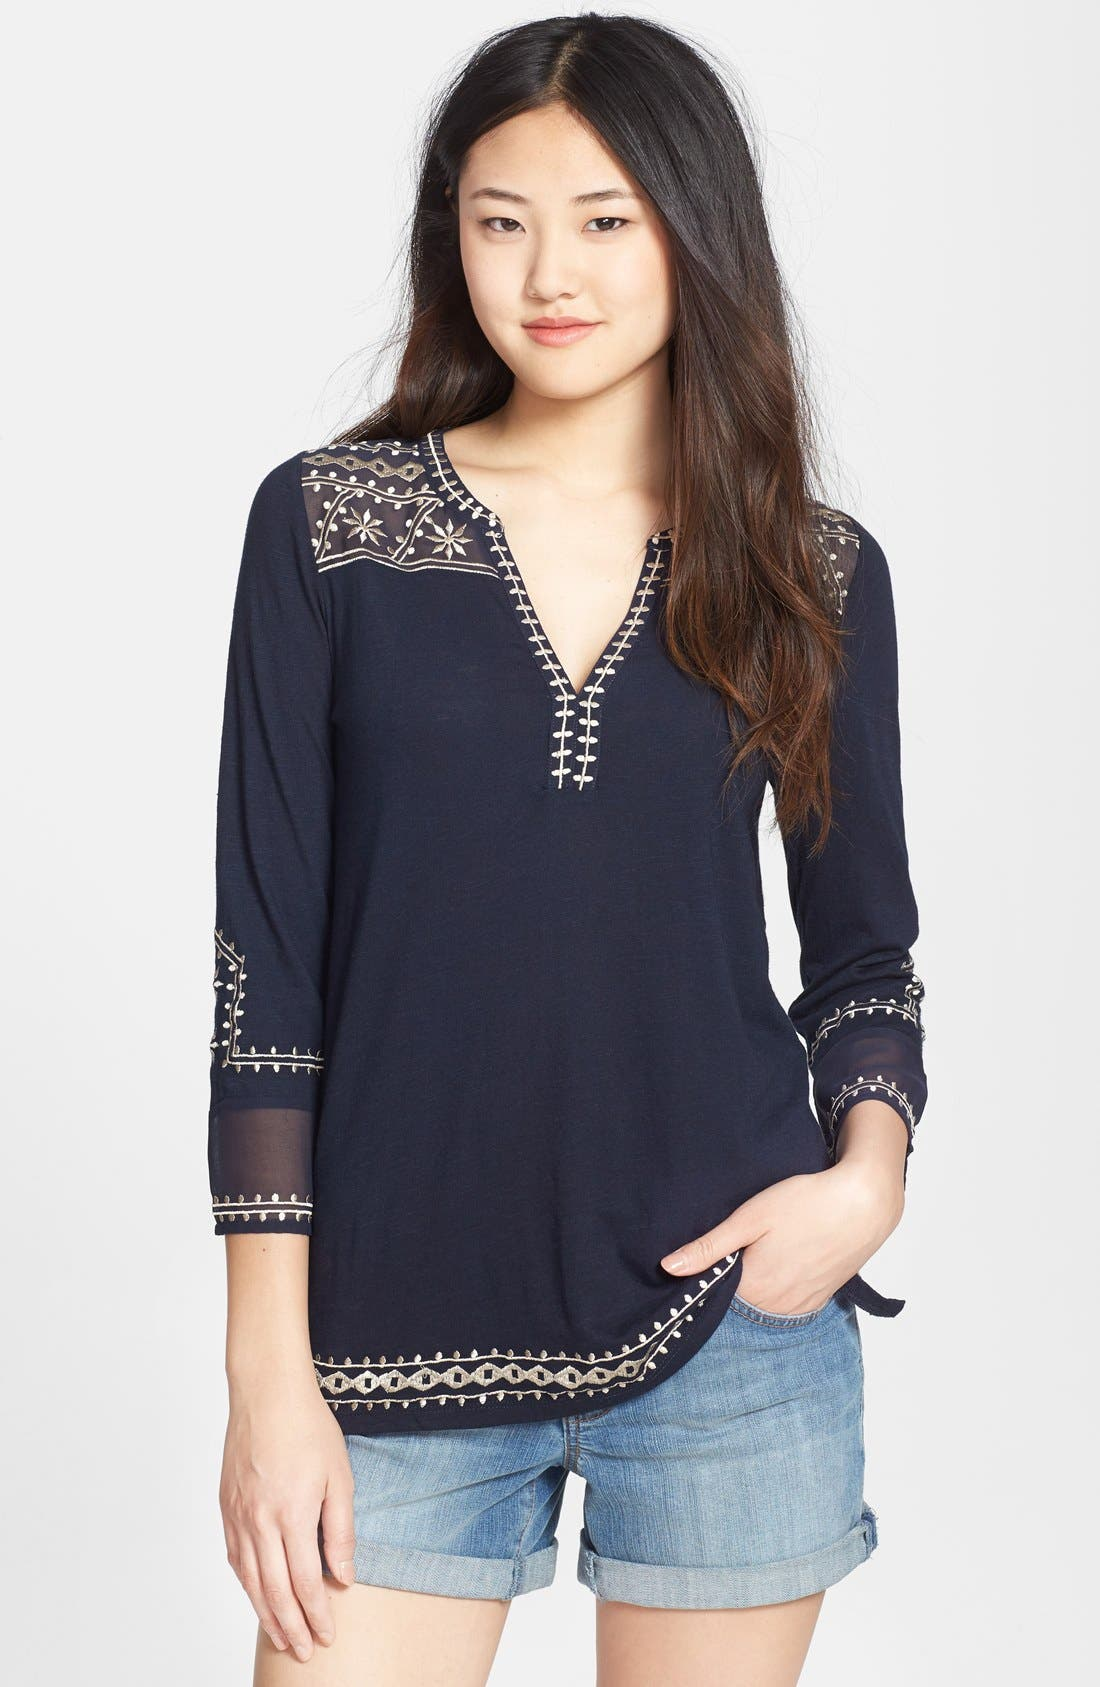 Main Image - Lucky Brand 'Kiana' Embroidered Tunic Top